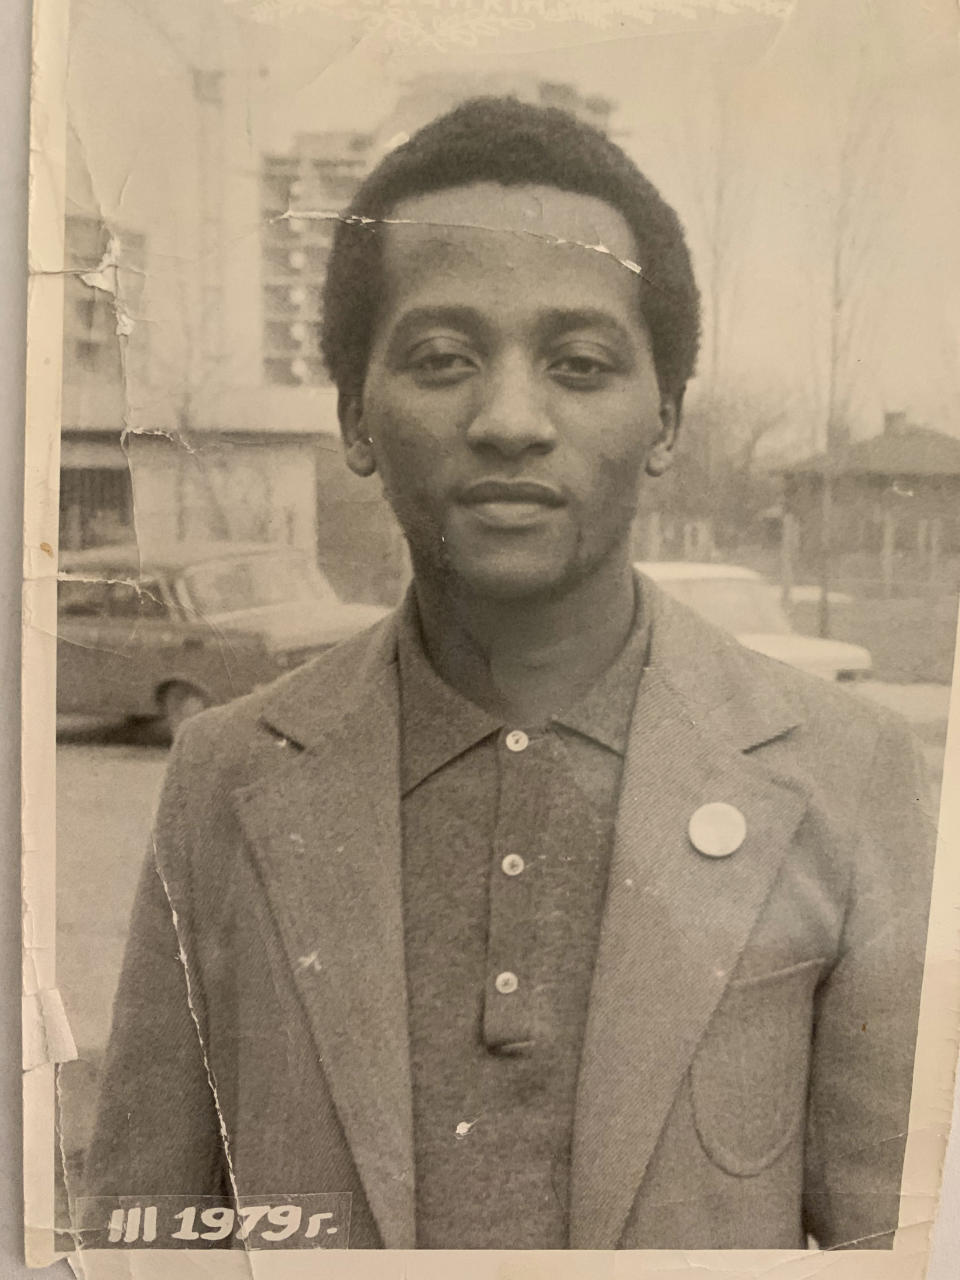 FILE - In In this photo supplied courtesy of the Mini family the late South African doctor and activist Dr. Clarence Mini is photographed in this 1979 photo in Bulgaria. Clarence Mini, a South African activist and doctor who died of COVID-19 spent his life fighting apartheid, the government's denial of HIV/AIDS and rampant corruption. Loved ones say Mini knew the odds were against him but he was committed to what he believed was right. He died in May at age 69. (Photo courtesy of the Mini family via AP)